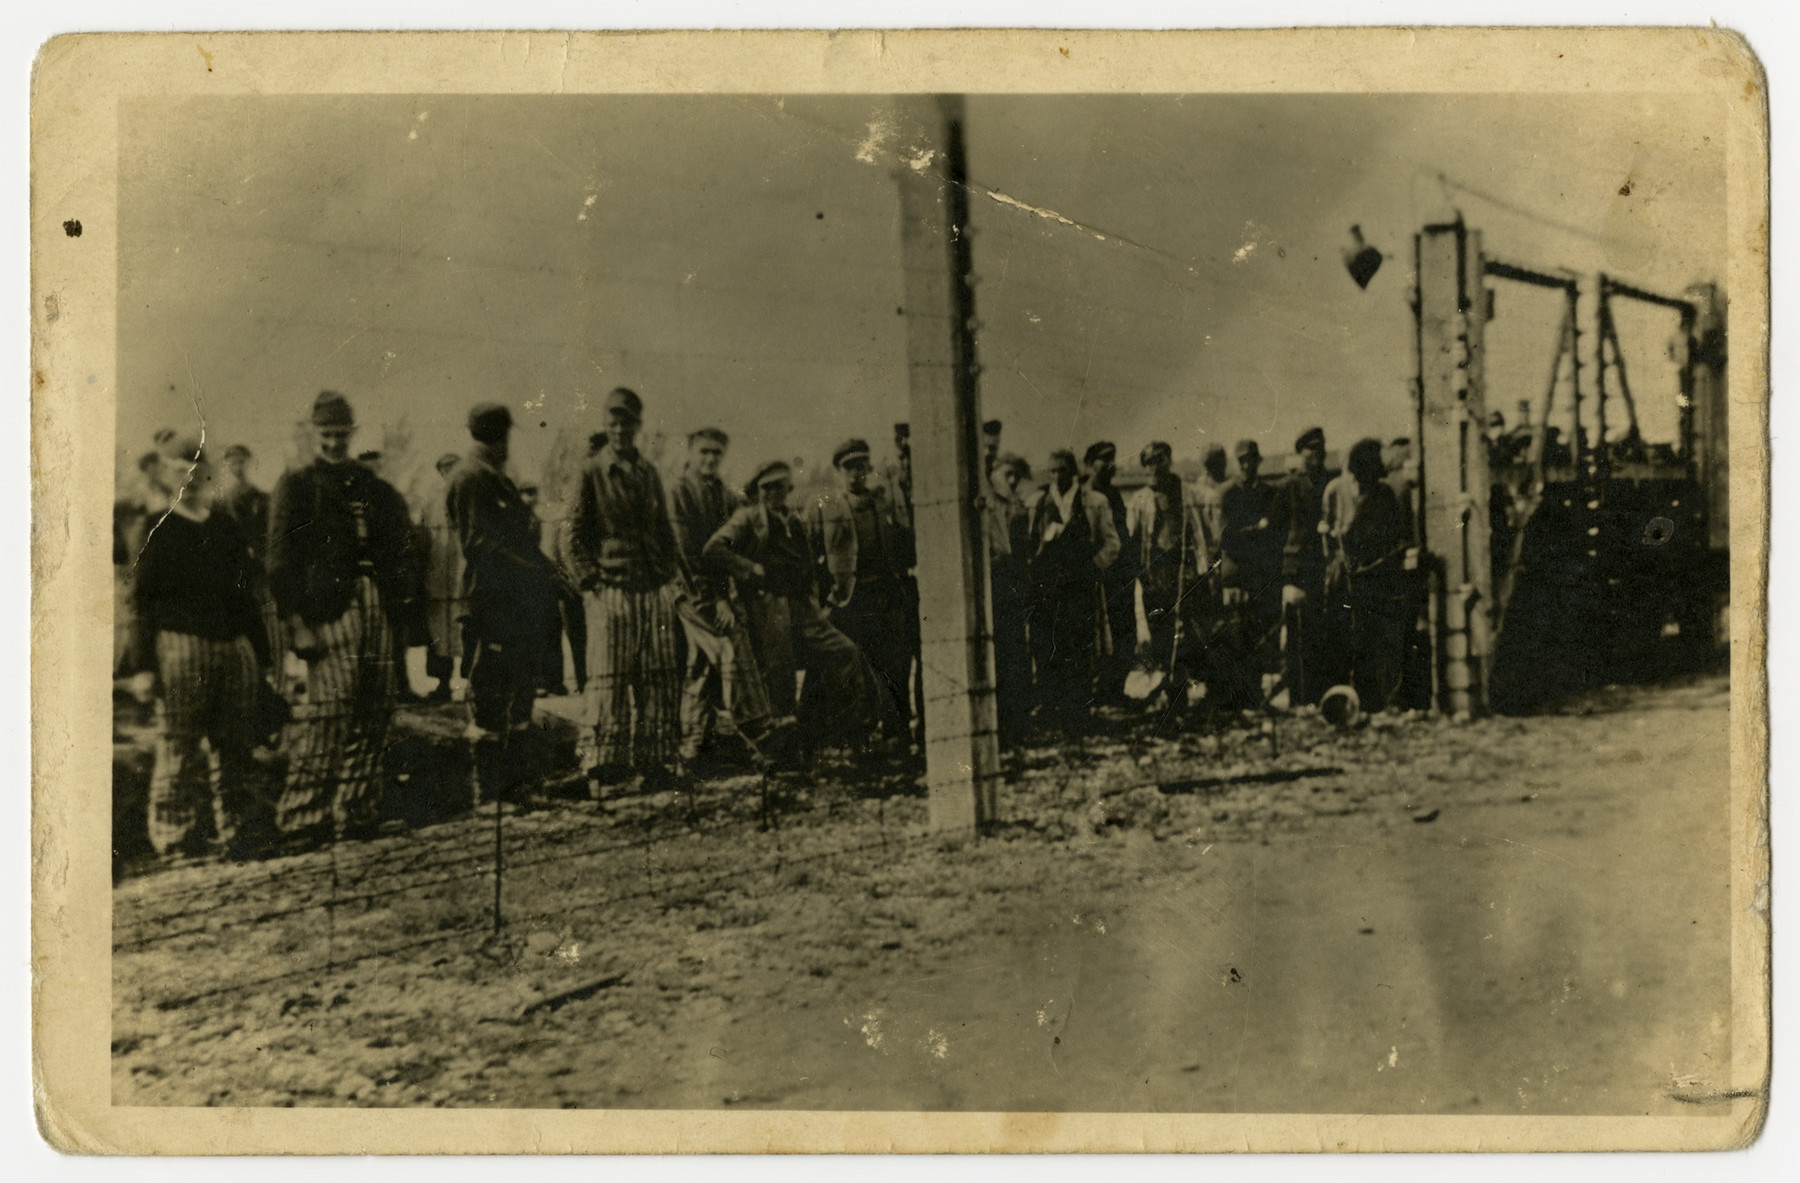 A group of prisoners in uniform stand behind a barbed wire fence [probably in the Dachau concentration camp].    Survivor Leo Sadinsky found this photograph in the possession of a dead German soldier.